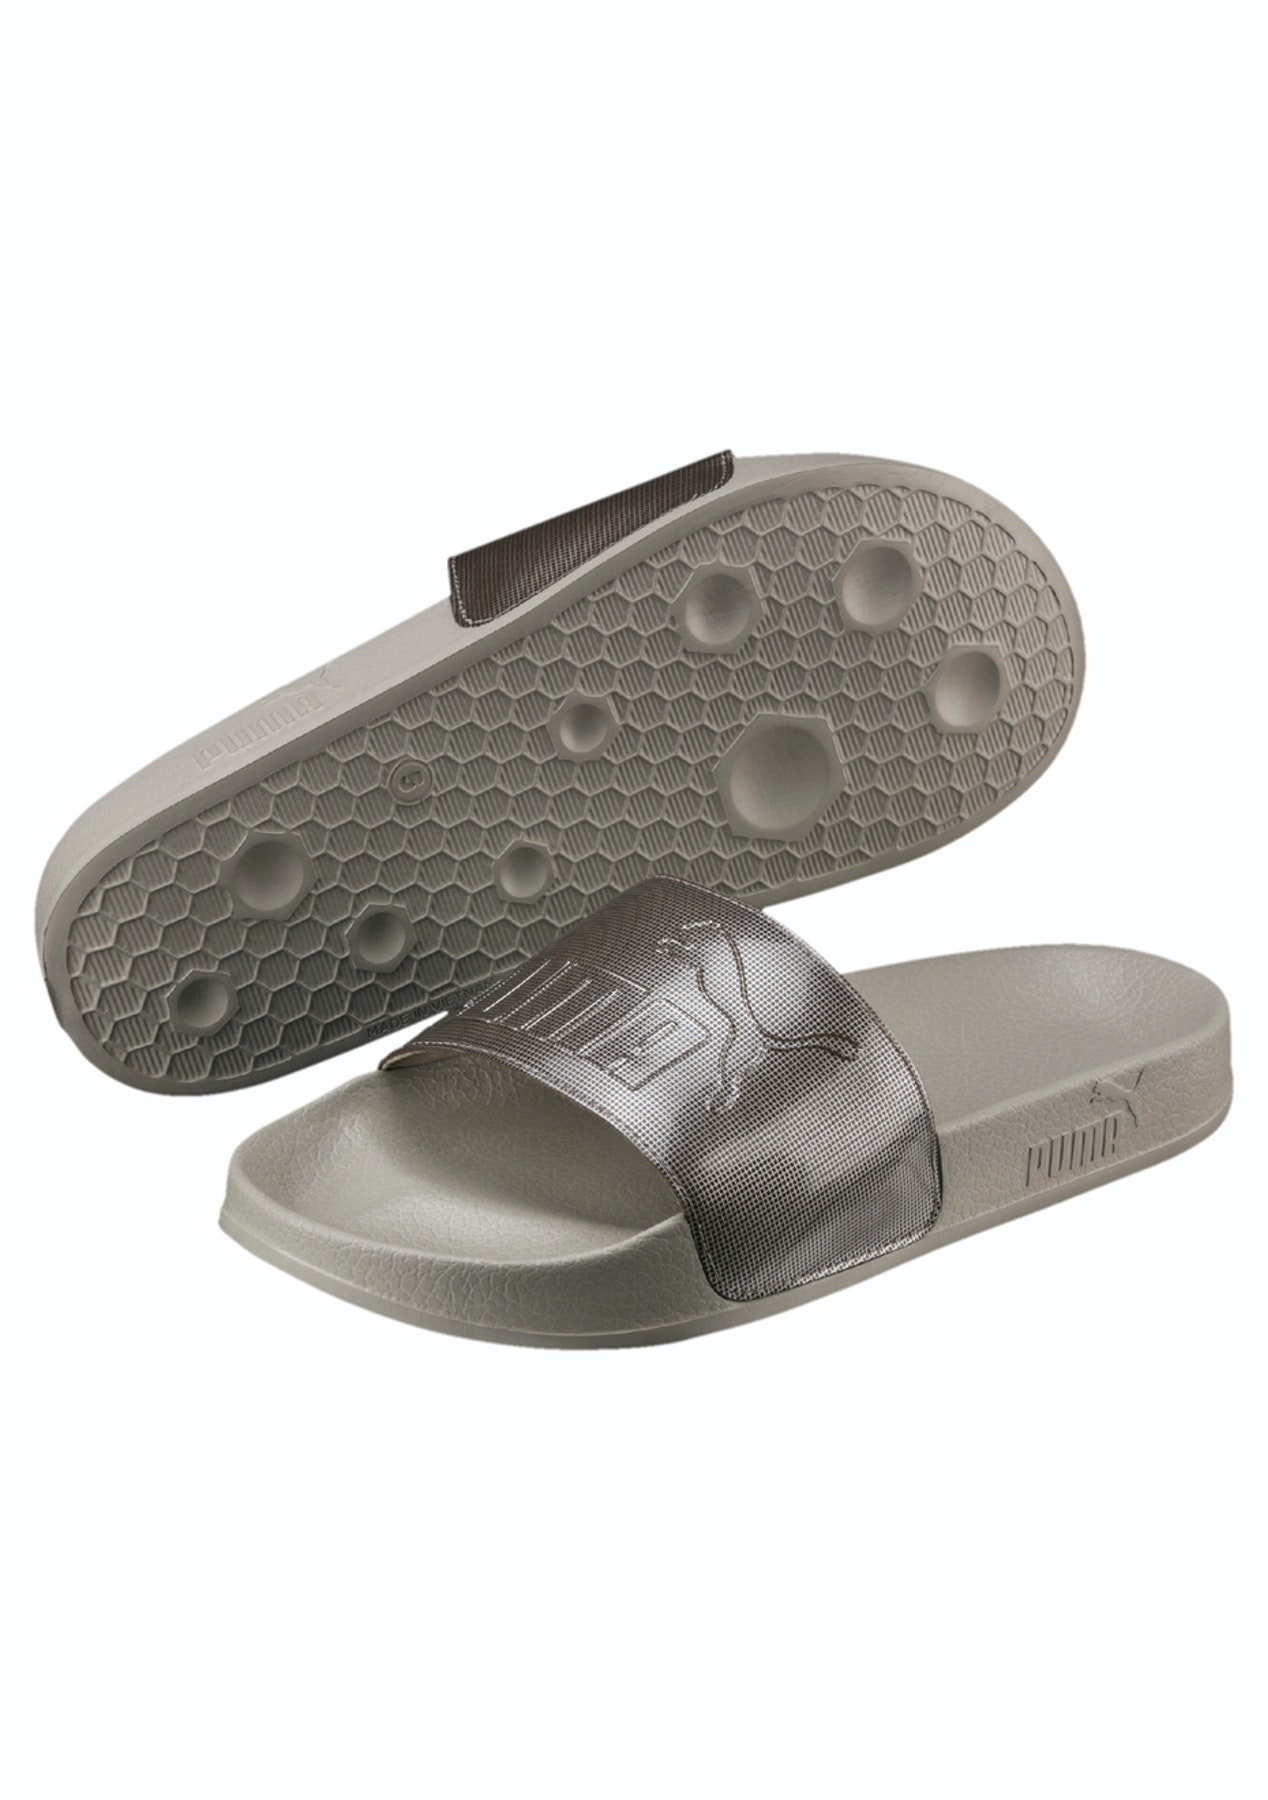 1cabe0be9fbd Puma Womens - Leadcat Ep Q2 Slide - Rock Ridge - Summer Slides and Sandals  - Onceit